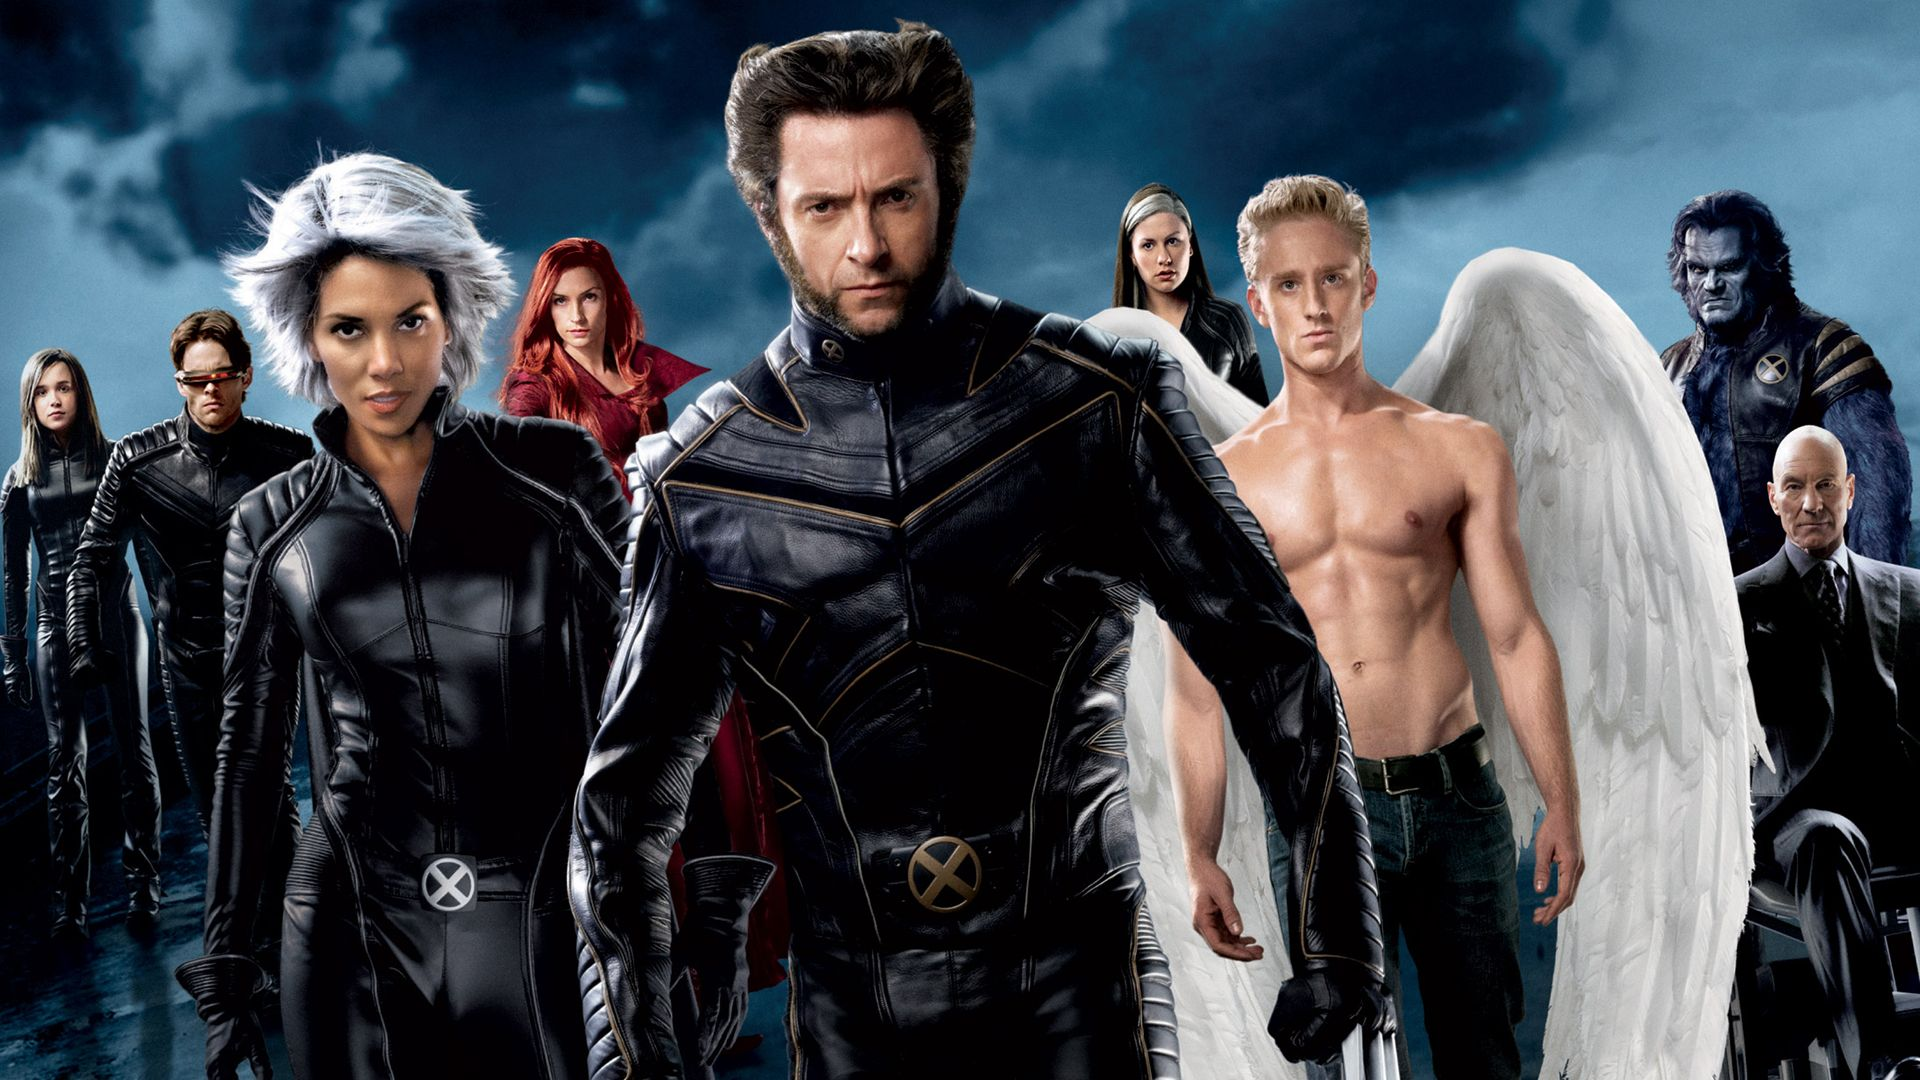 Born This Way How To Discover Your Mutant Powers Like The X Men Man Movies Xmen Characters X Men